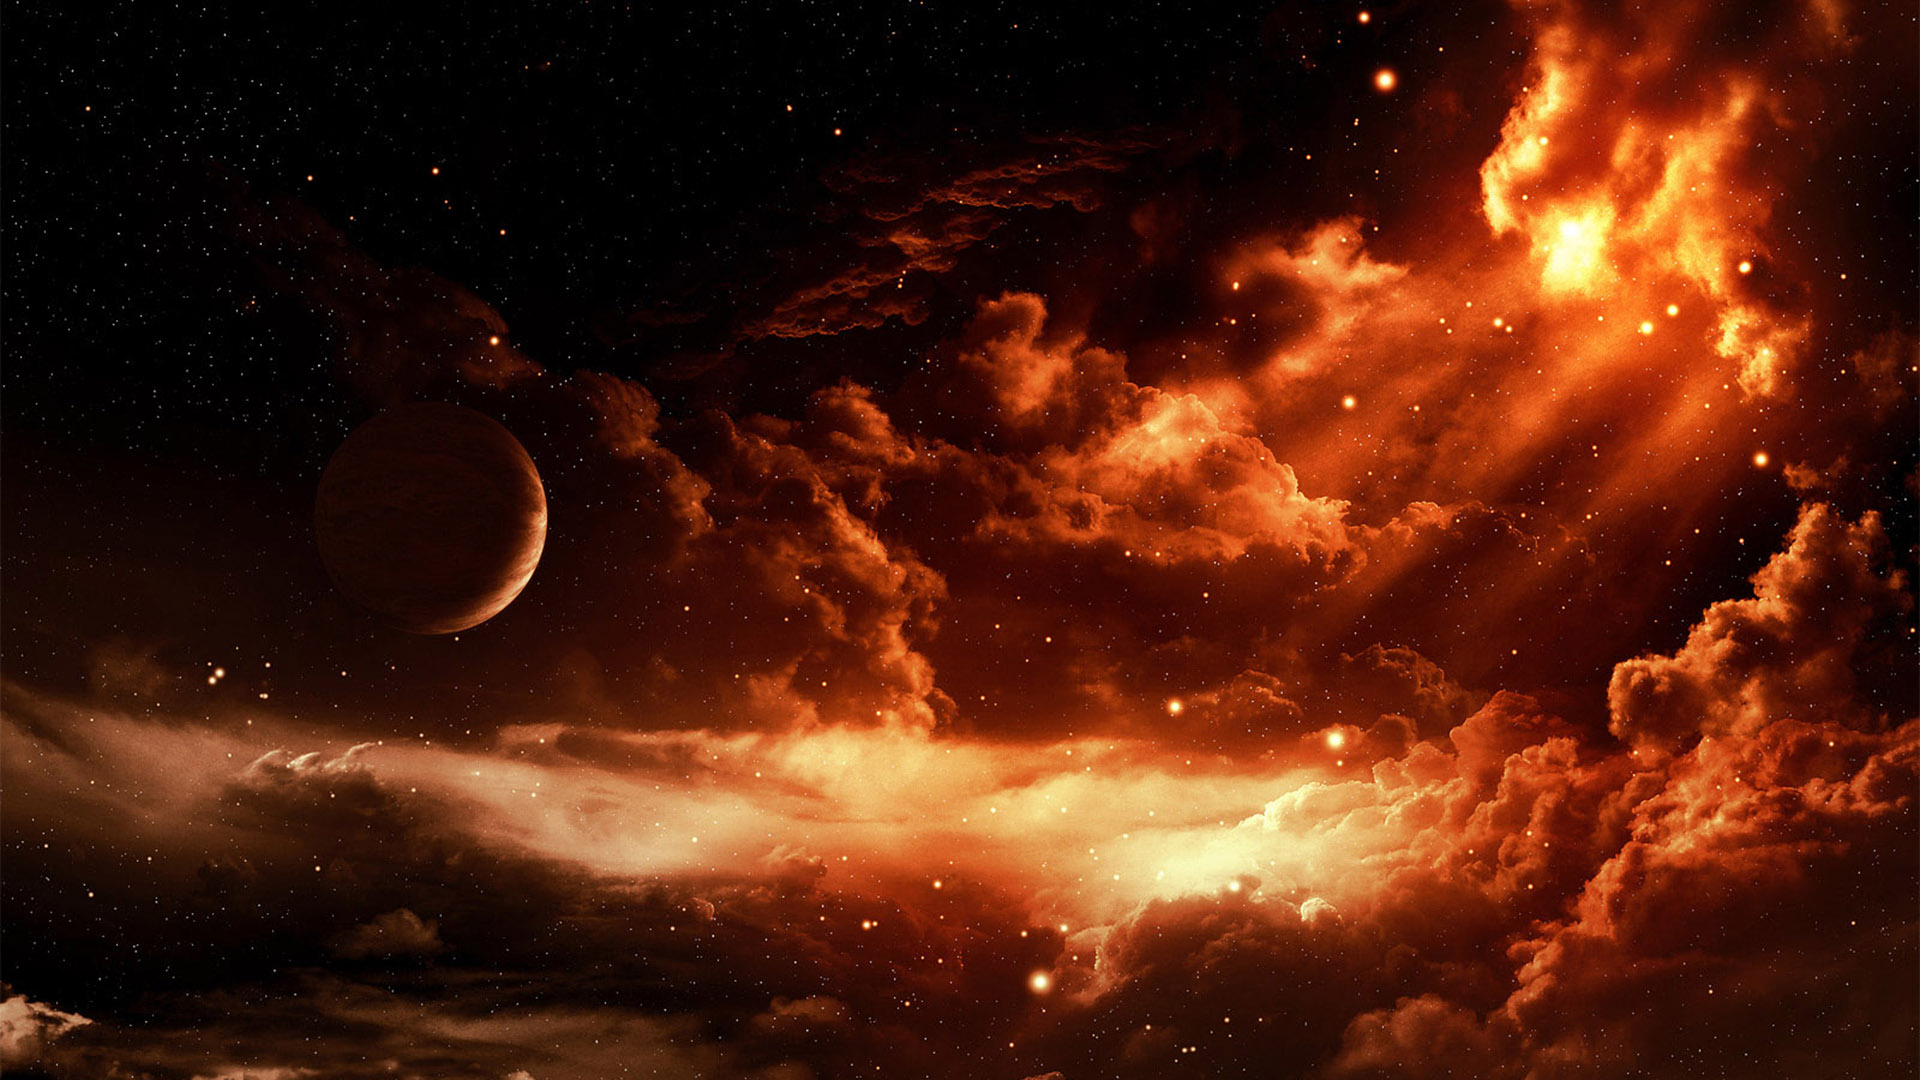 Hd wallpaper space - Hd Wallpaper Space Download Largest Collection Of Hd Space Wallpapers For Free